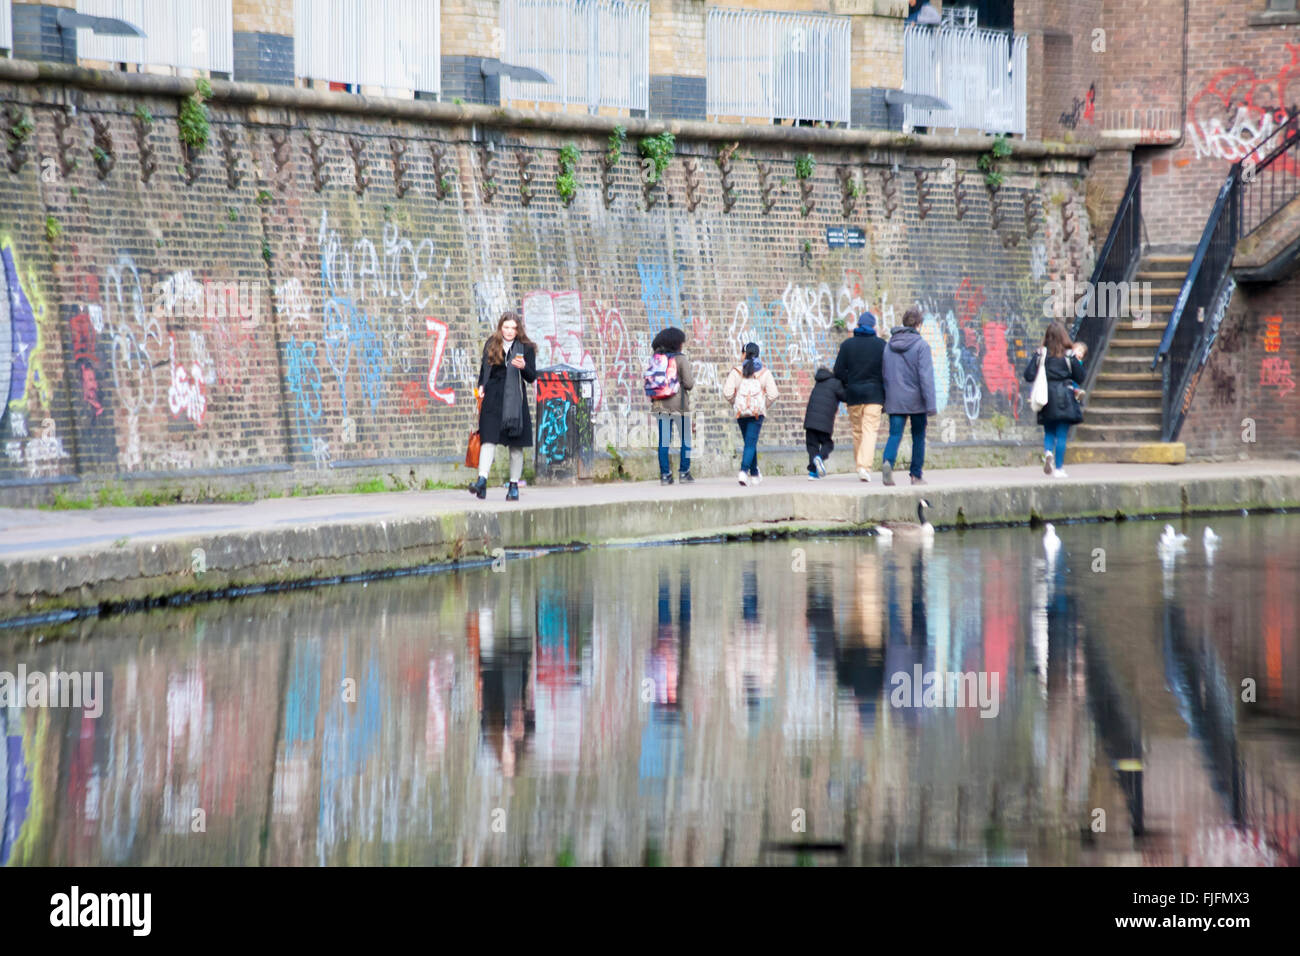 People walking along Regents Canal towpath reflected in water passing graffiti on wall, London in February - Stock Image